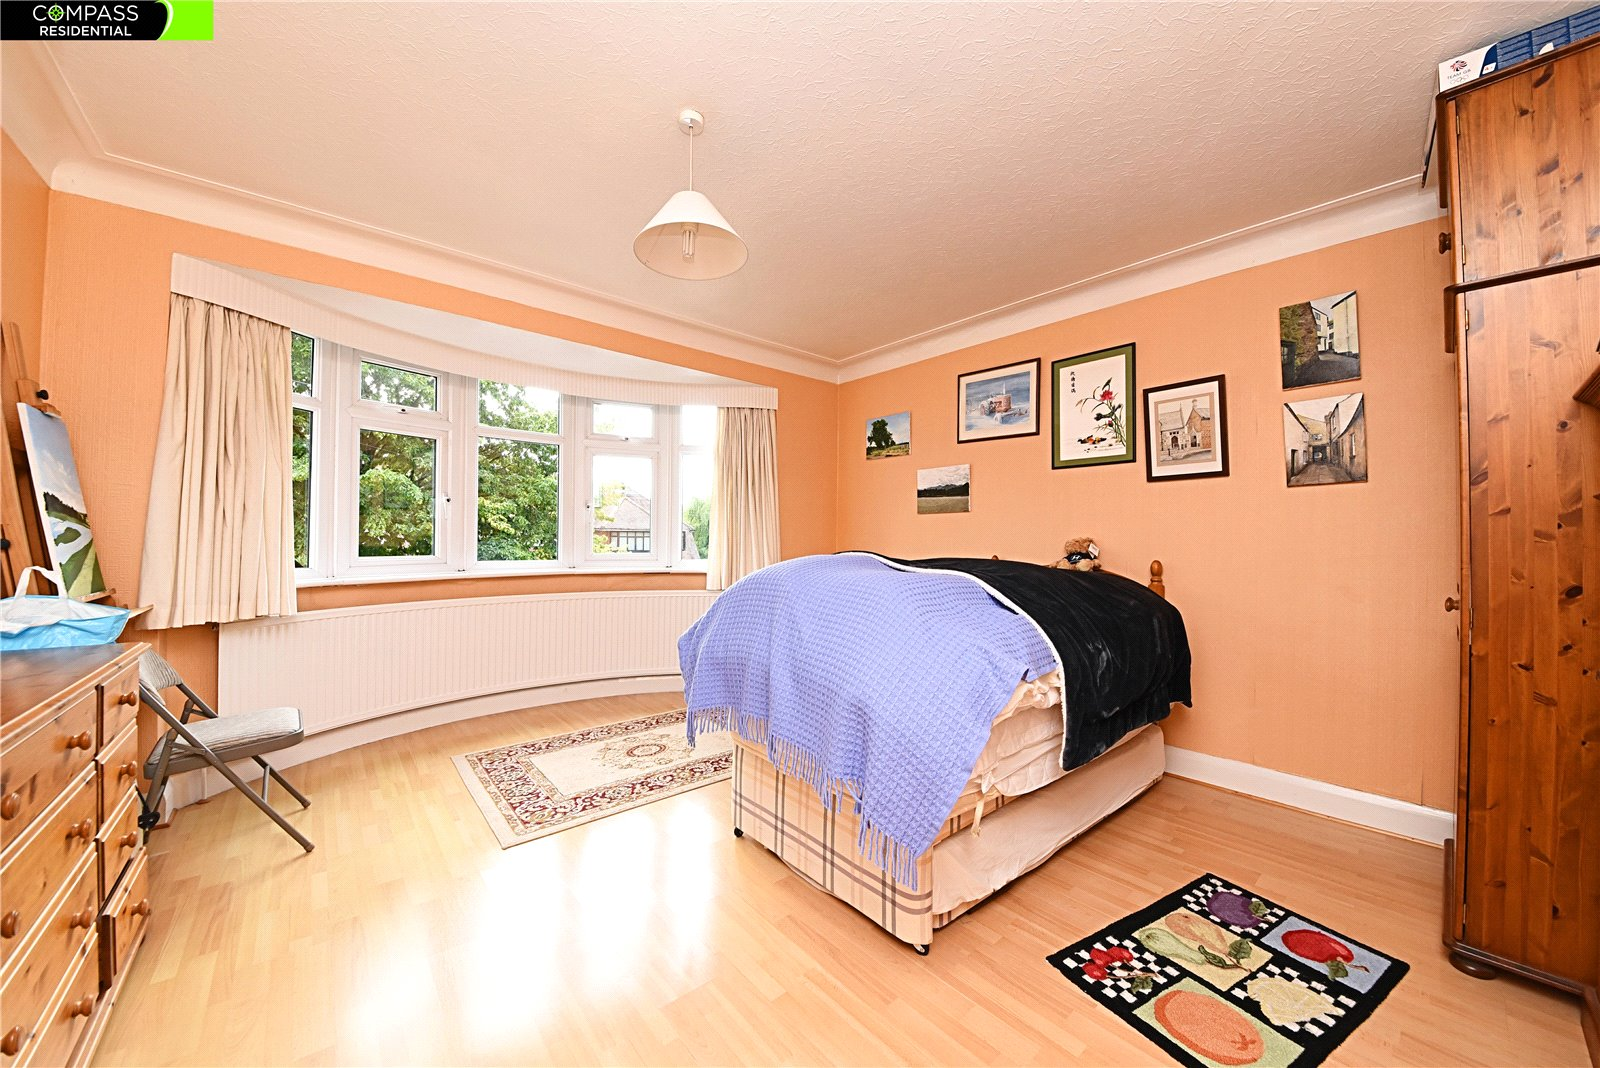 3 bed house for sale in Totteridge, N20 8HL  - Property Image 8